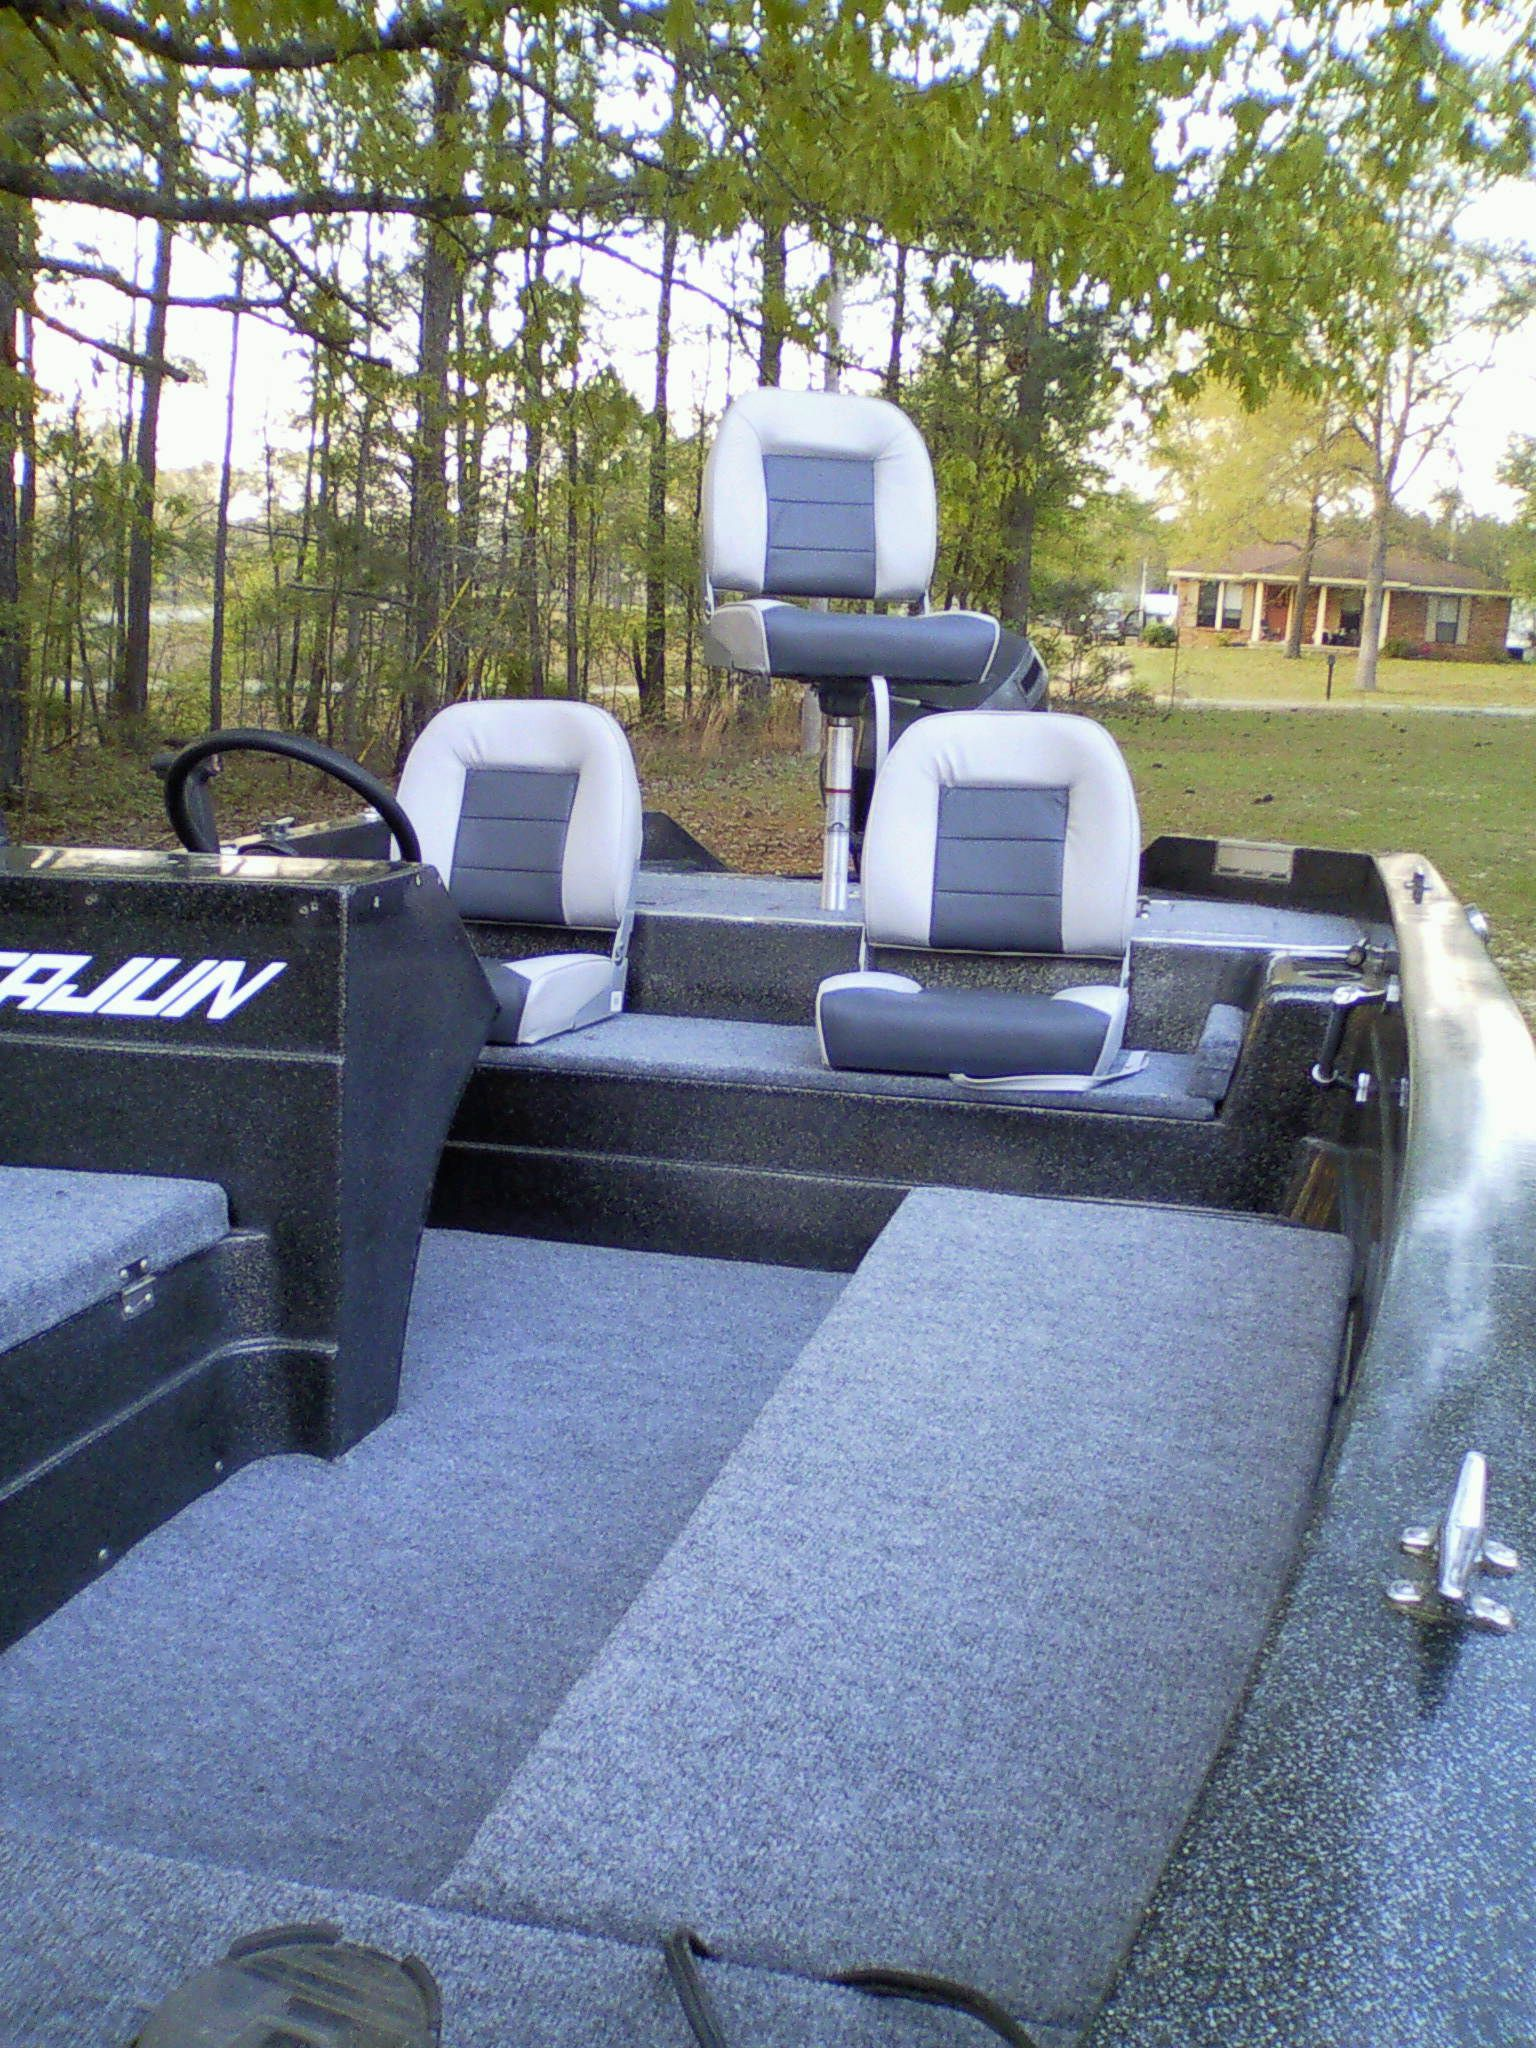 This Is My 1989 Cajun Bass Boat If You Want To Save Money On An